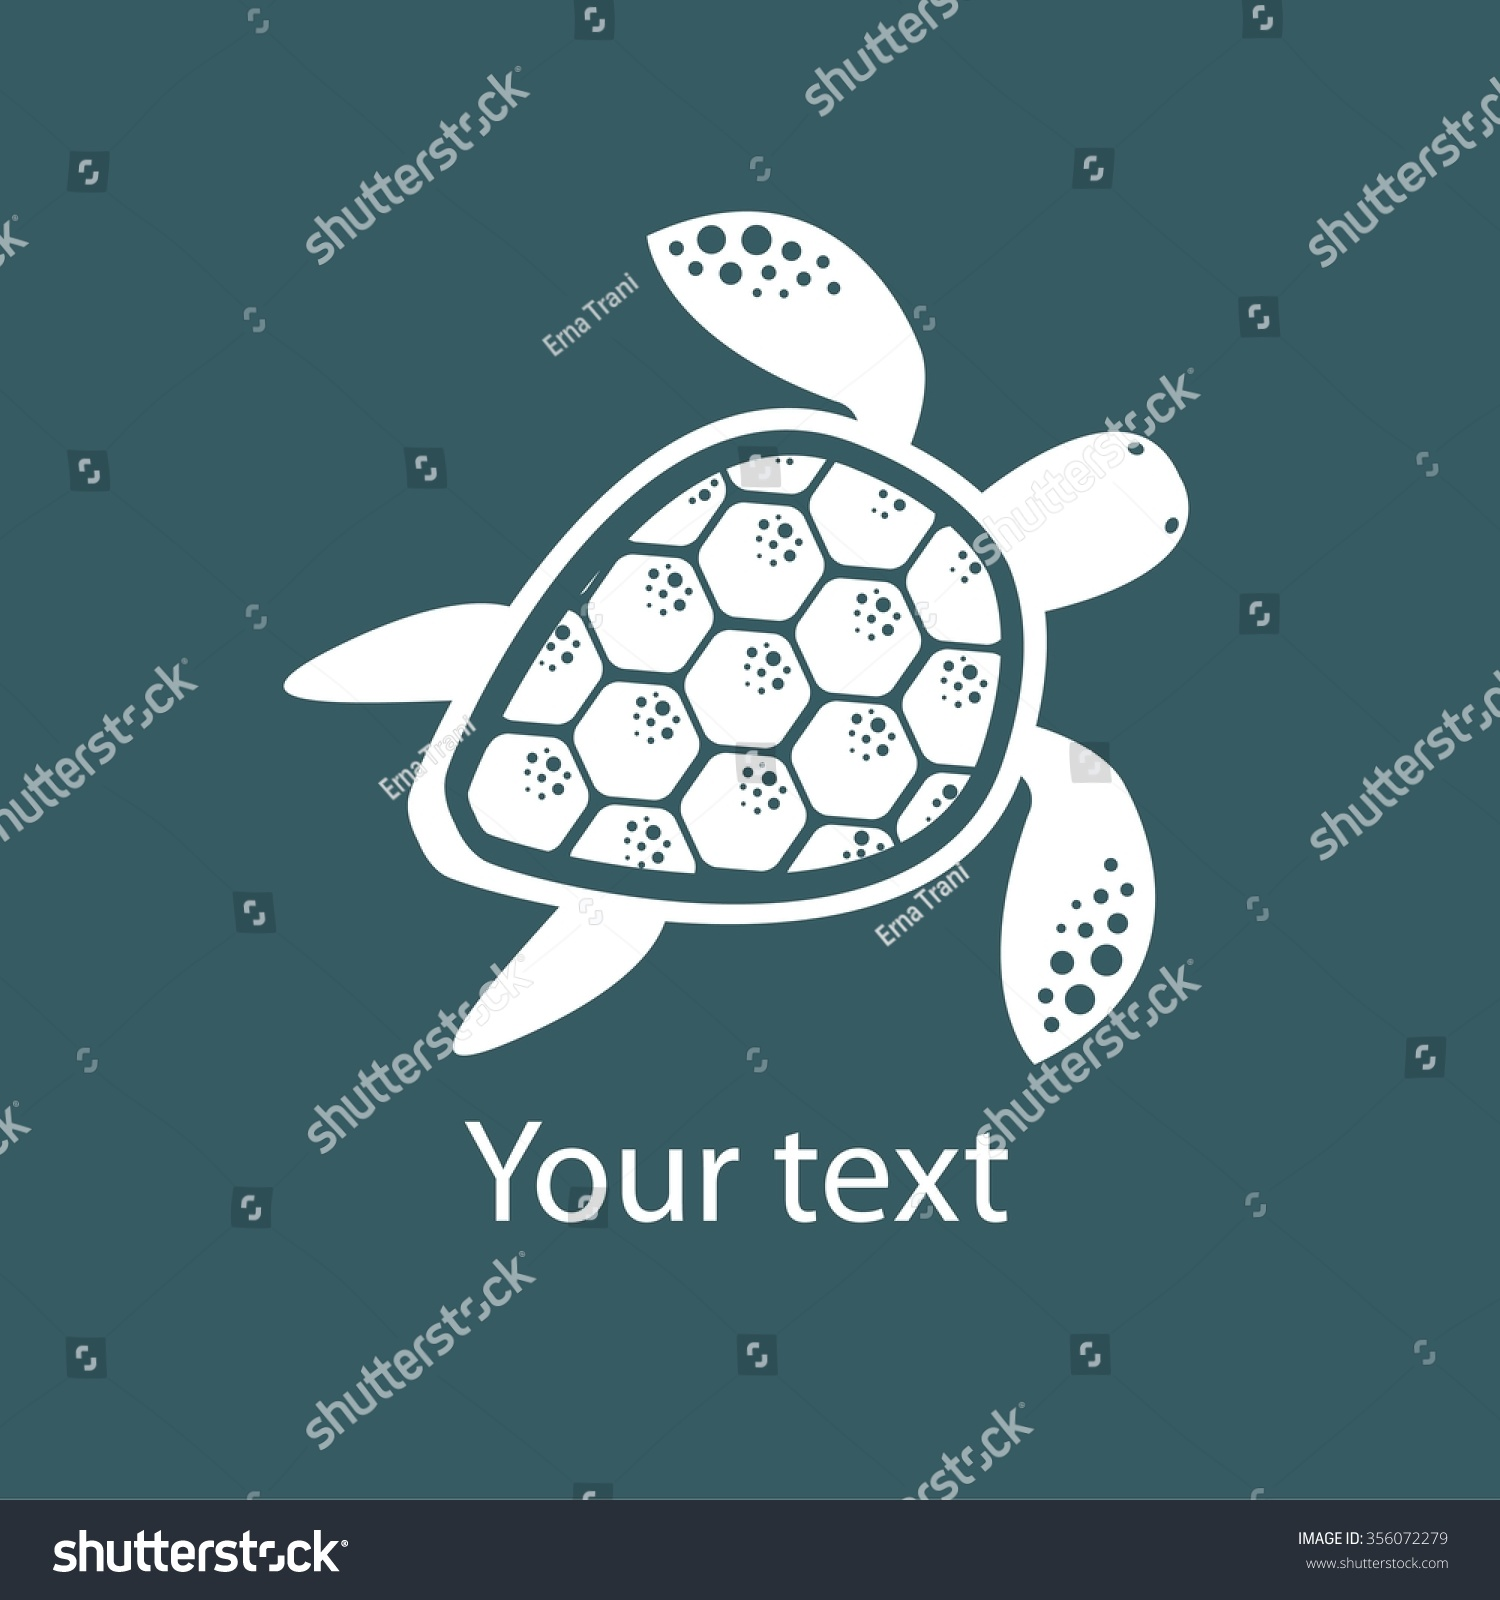 Silhouette stylized turtle on blue background stock vector silhouette stylized turtle on blue background turtle symbol vector illustration biocorpaavc